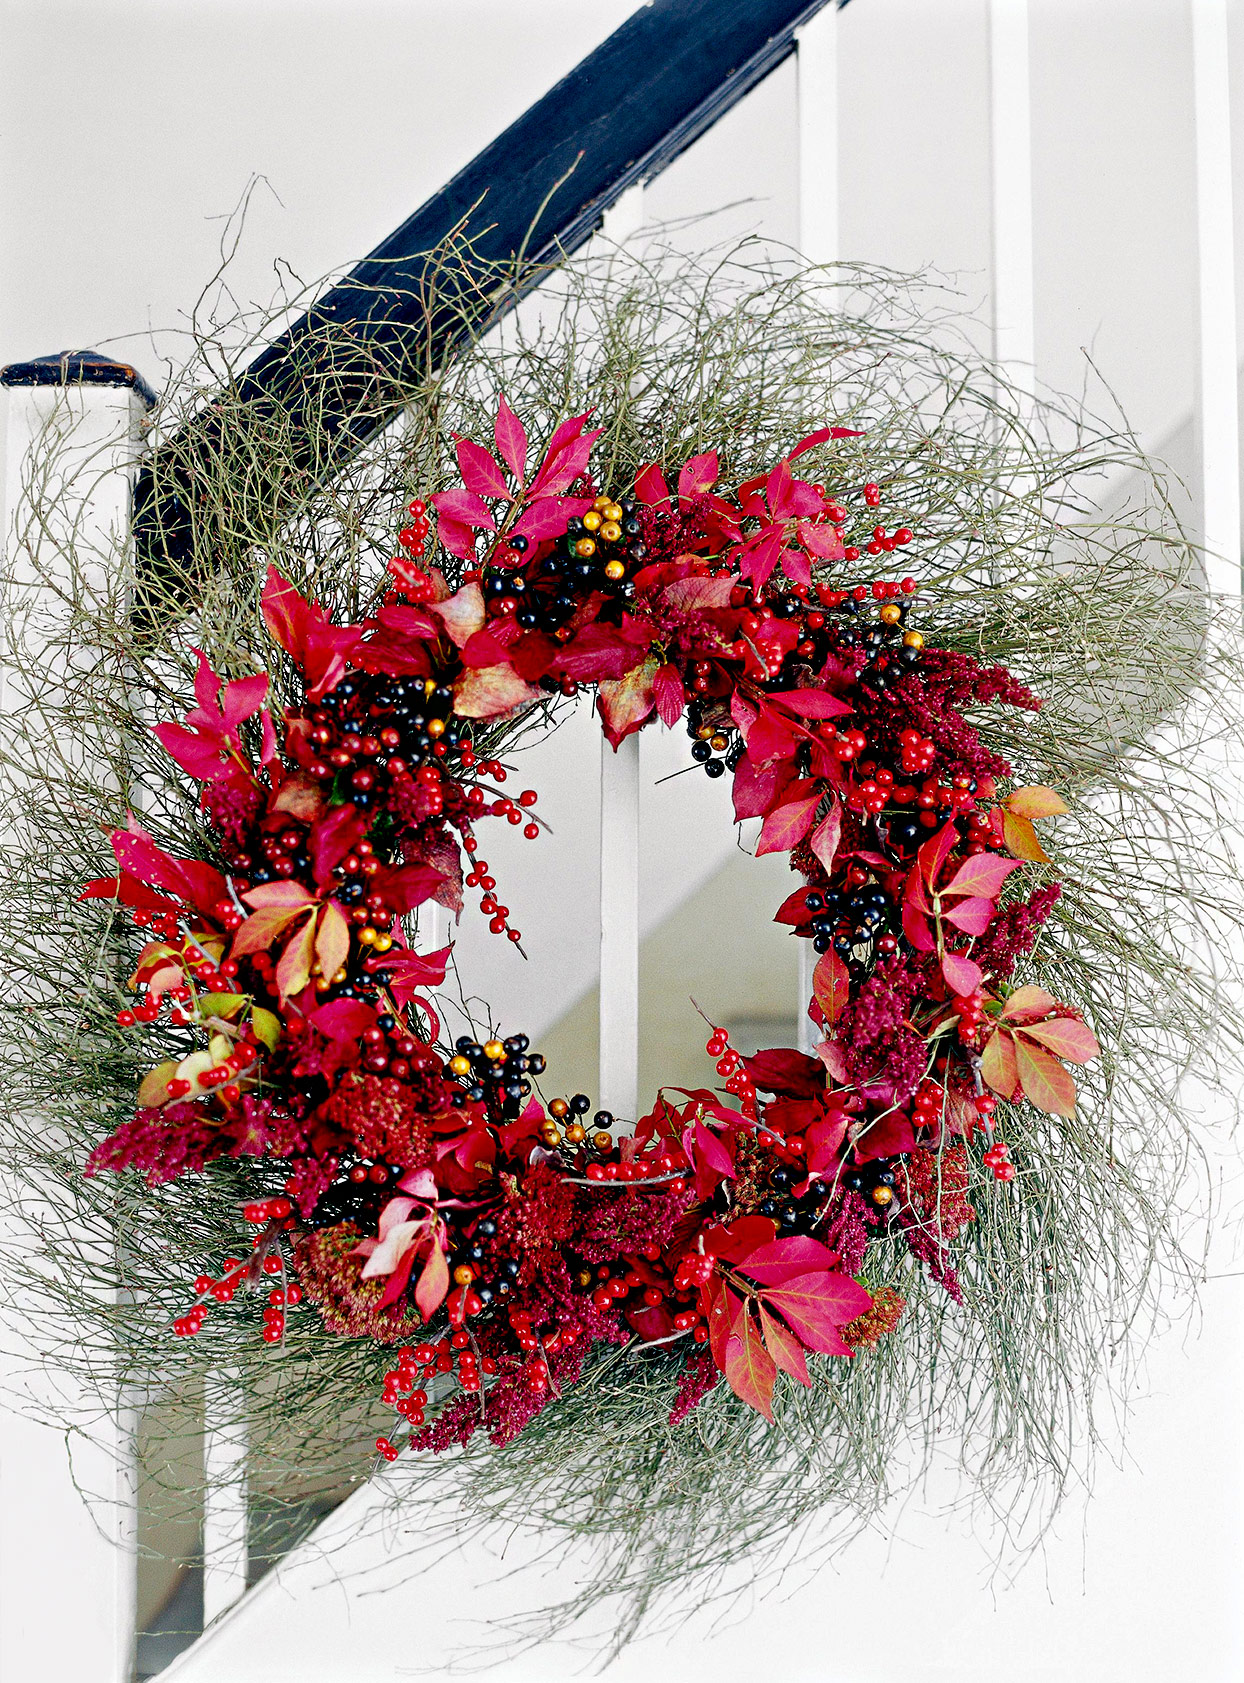 Wreath made of green plants and red berries and flowers